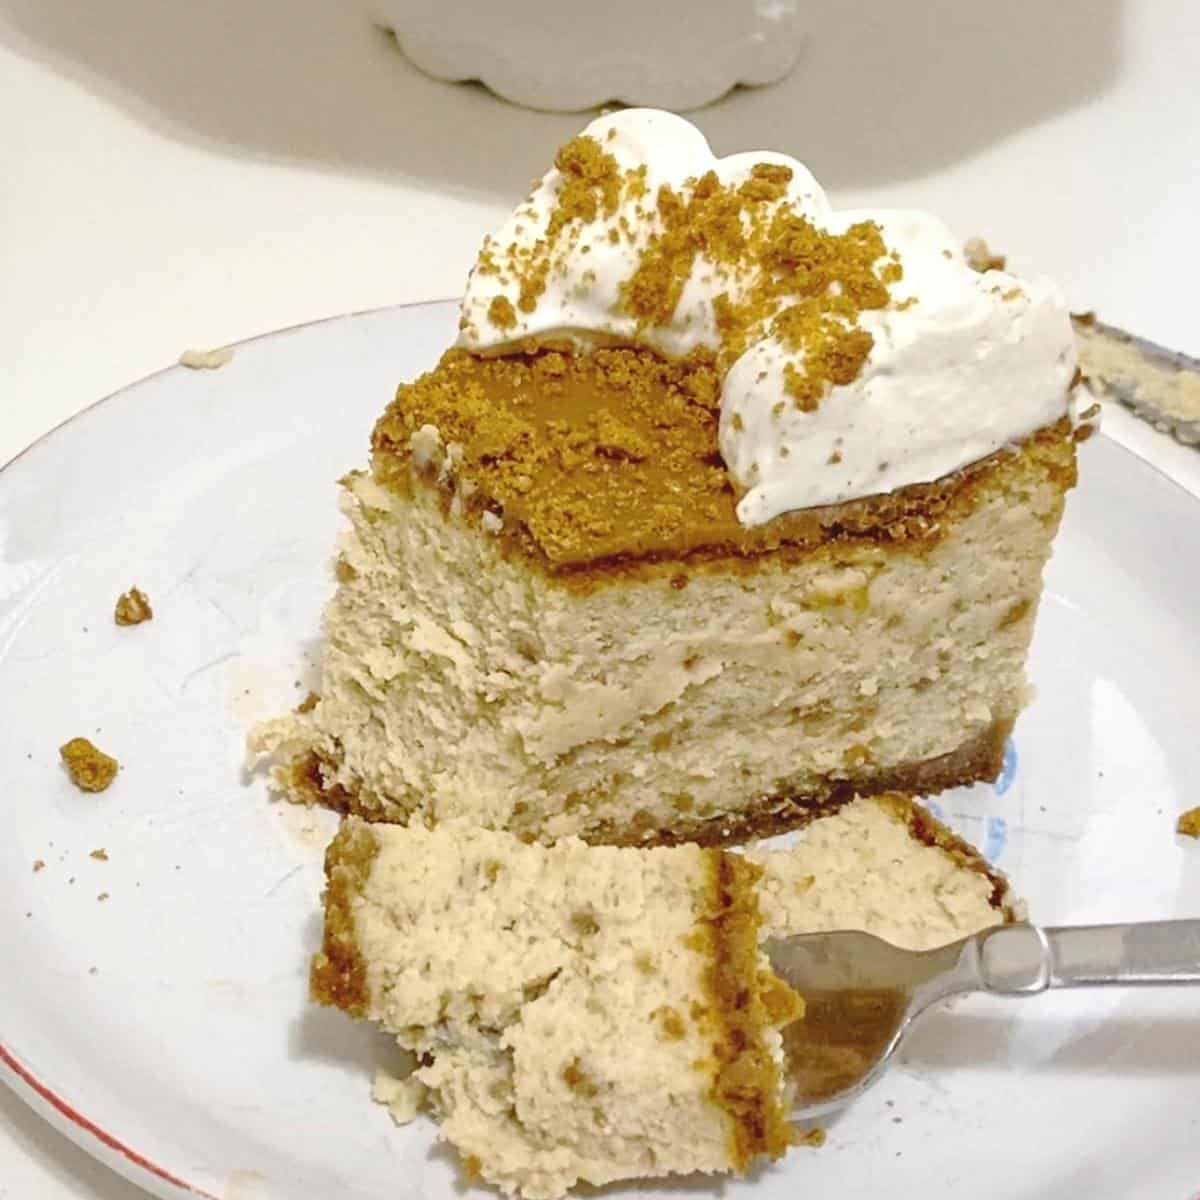 A slice and fork of cheesecake with biscoff.